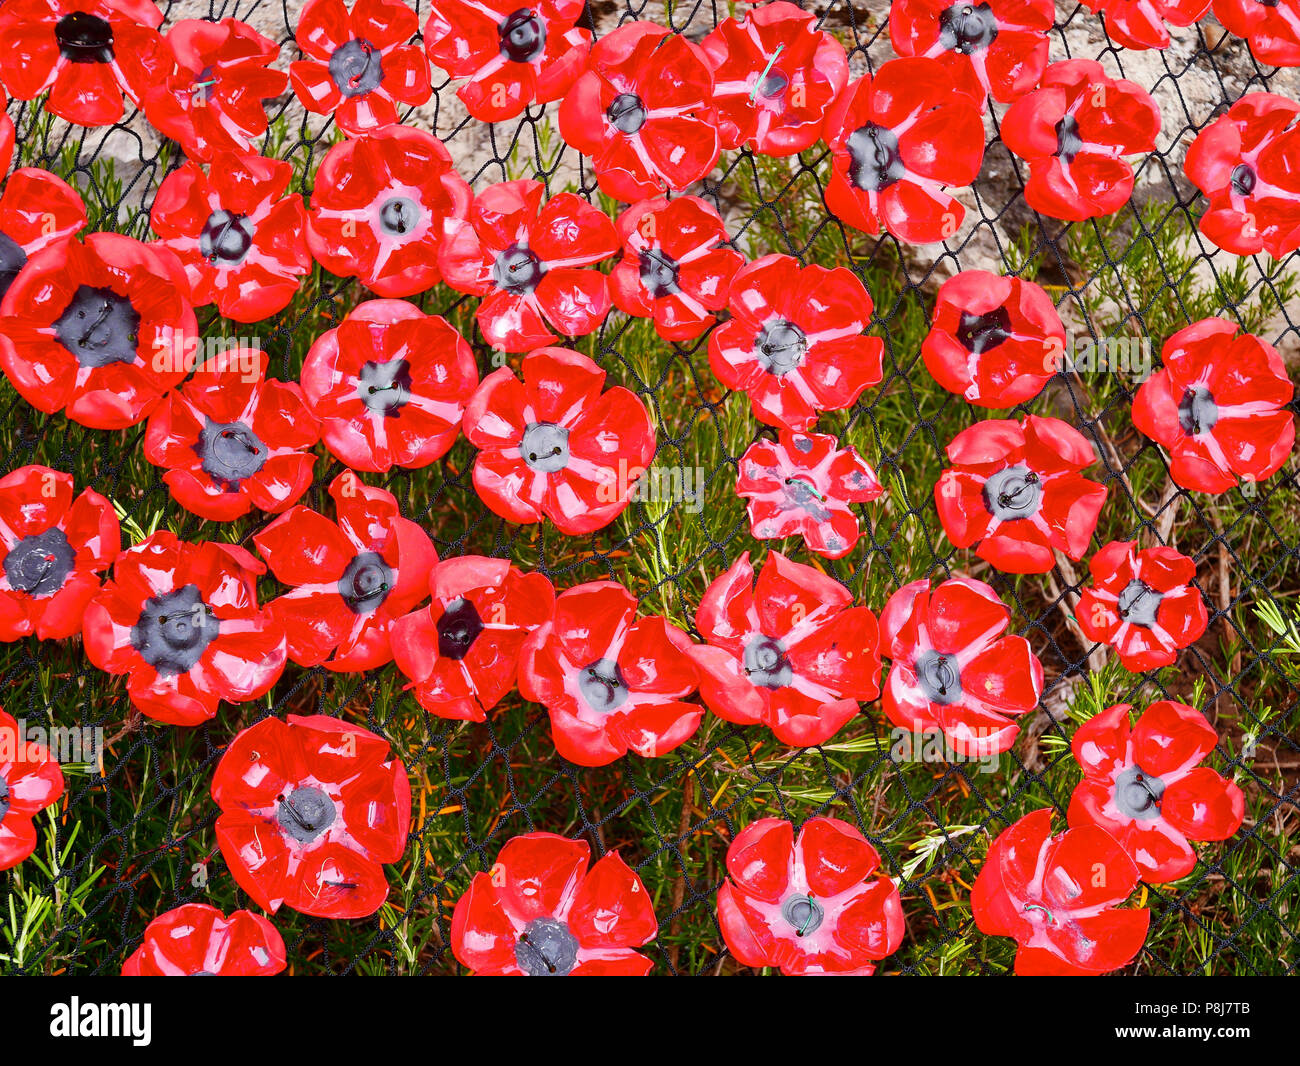 Plastic poppy stock photos plastic poppy stock images alamy remembrance poppies made from recycled plastic drinks bottles attached to a net on a grass background mightylinksfo